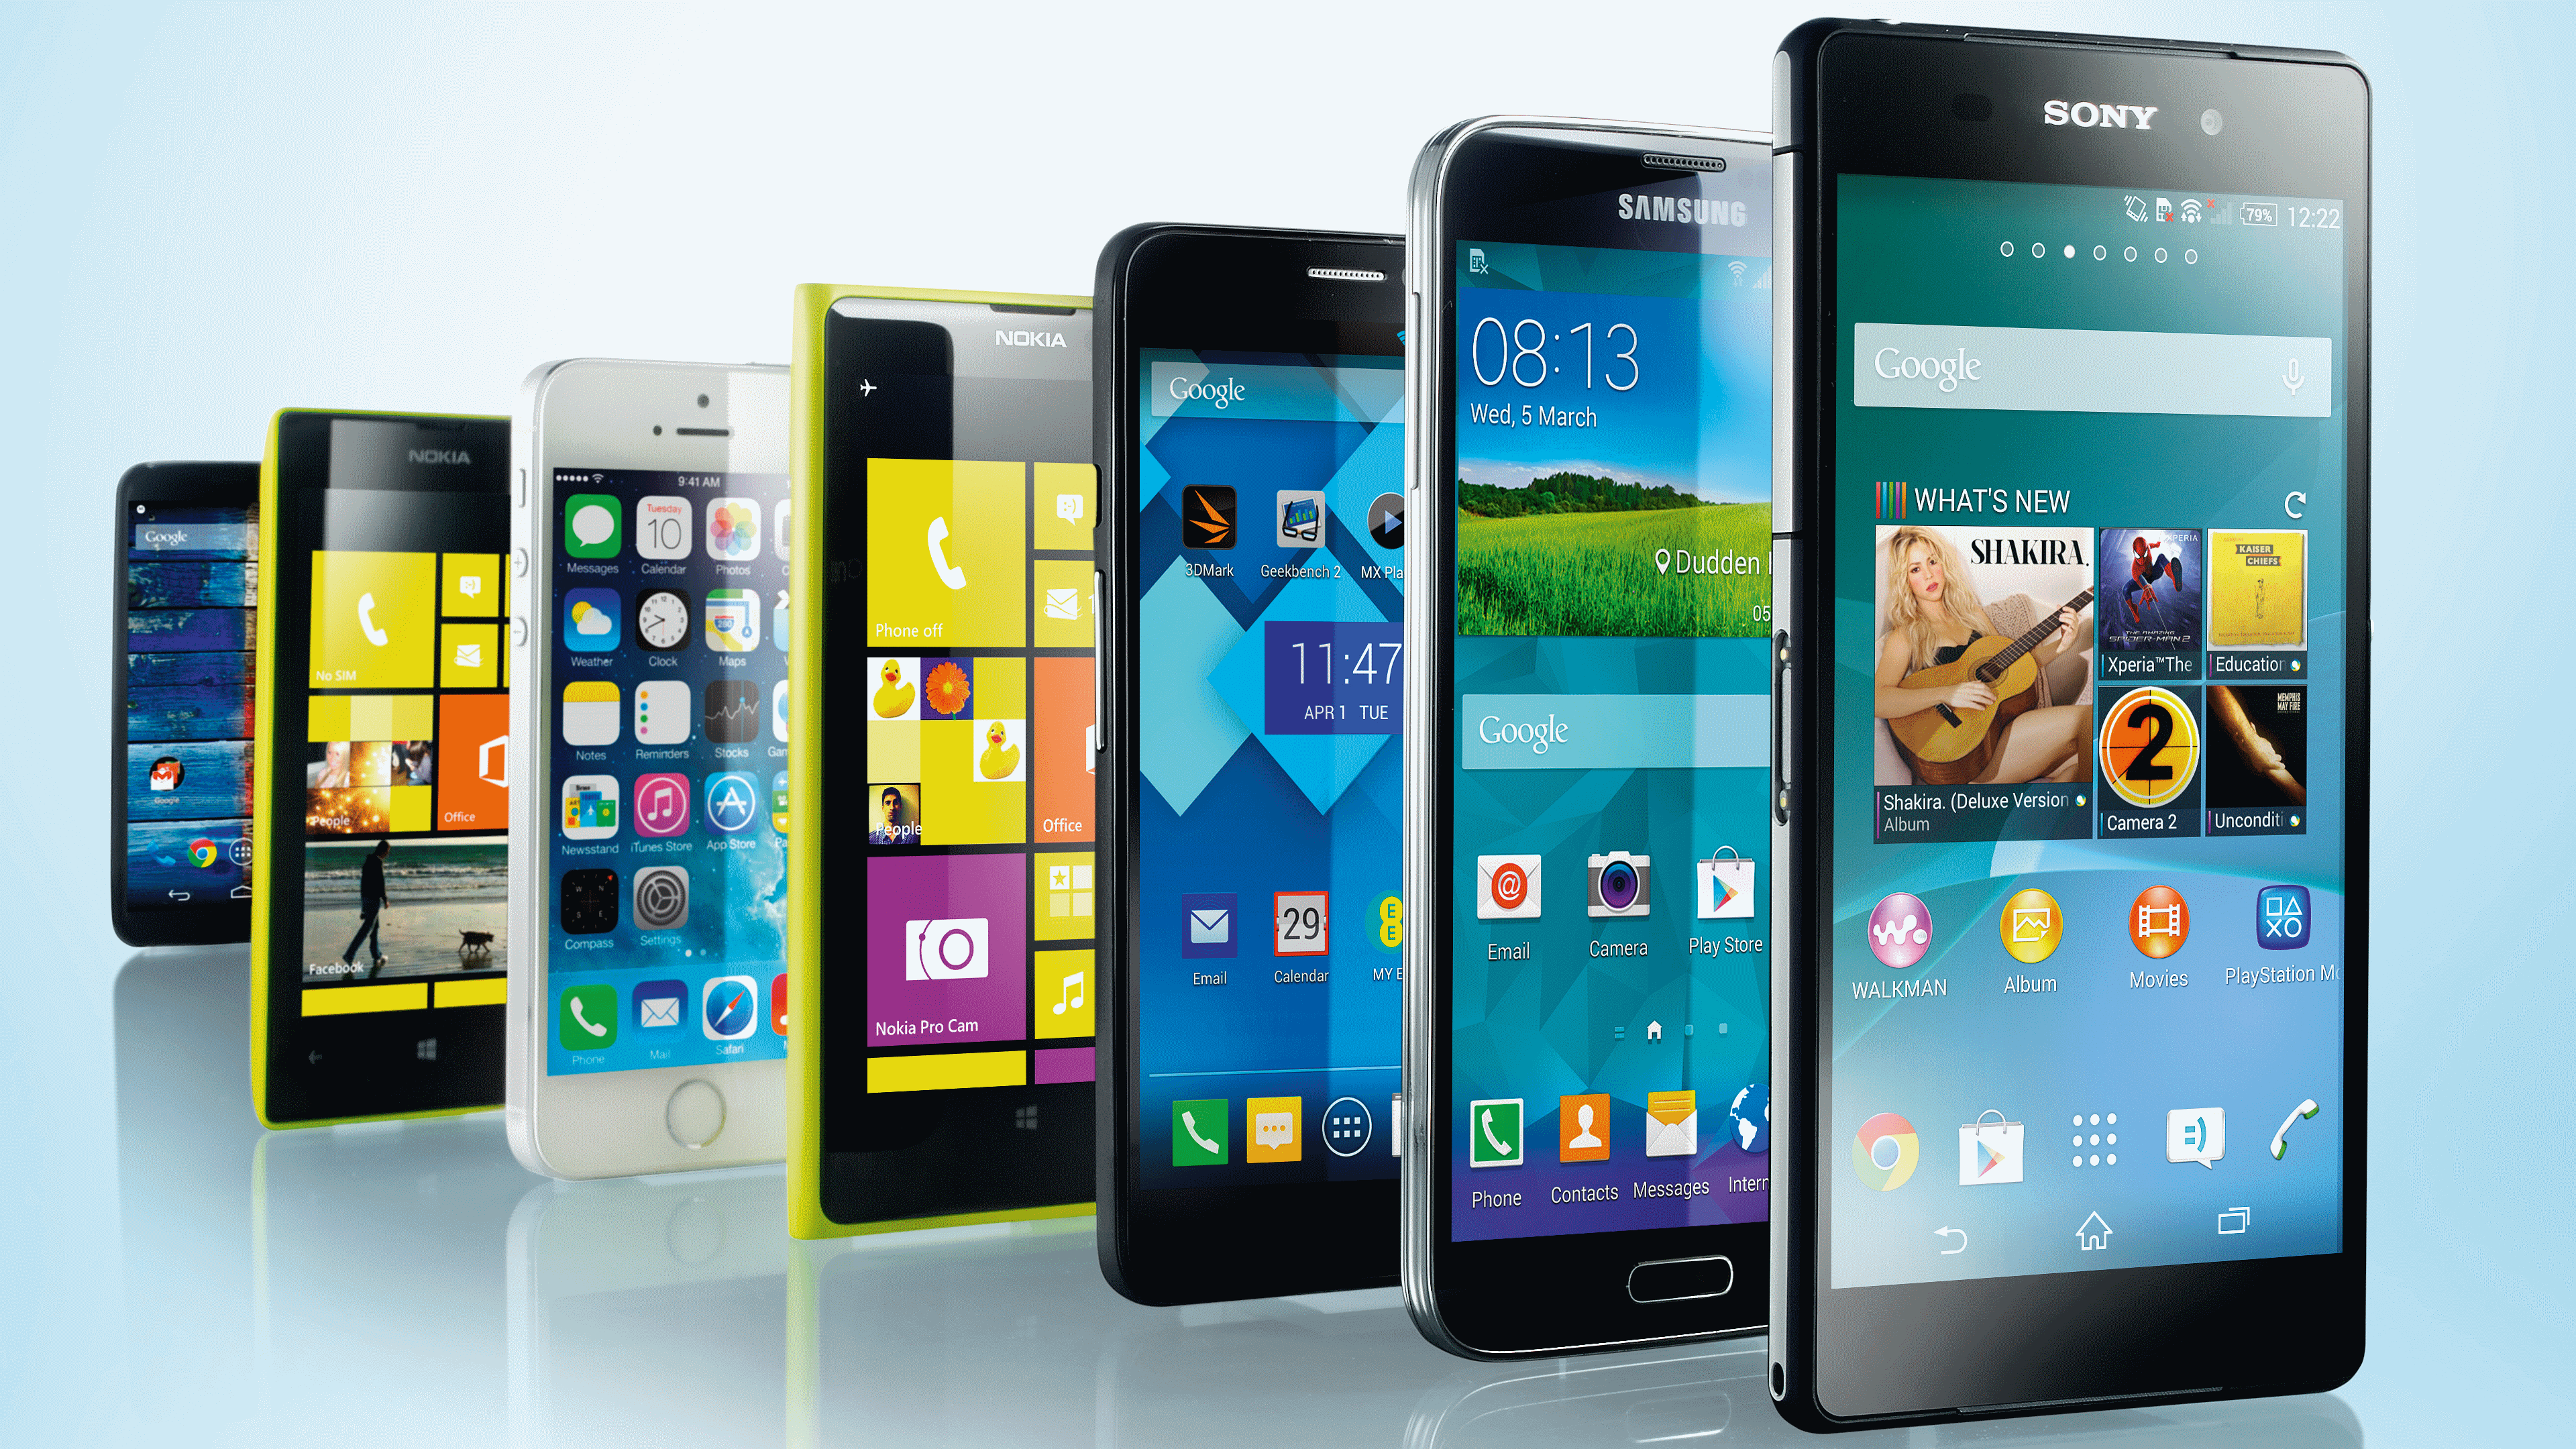 What is the best mobile phone